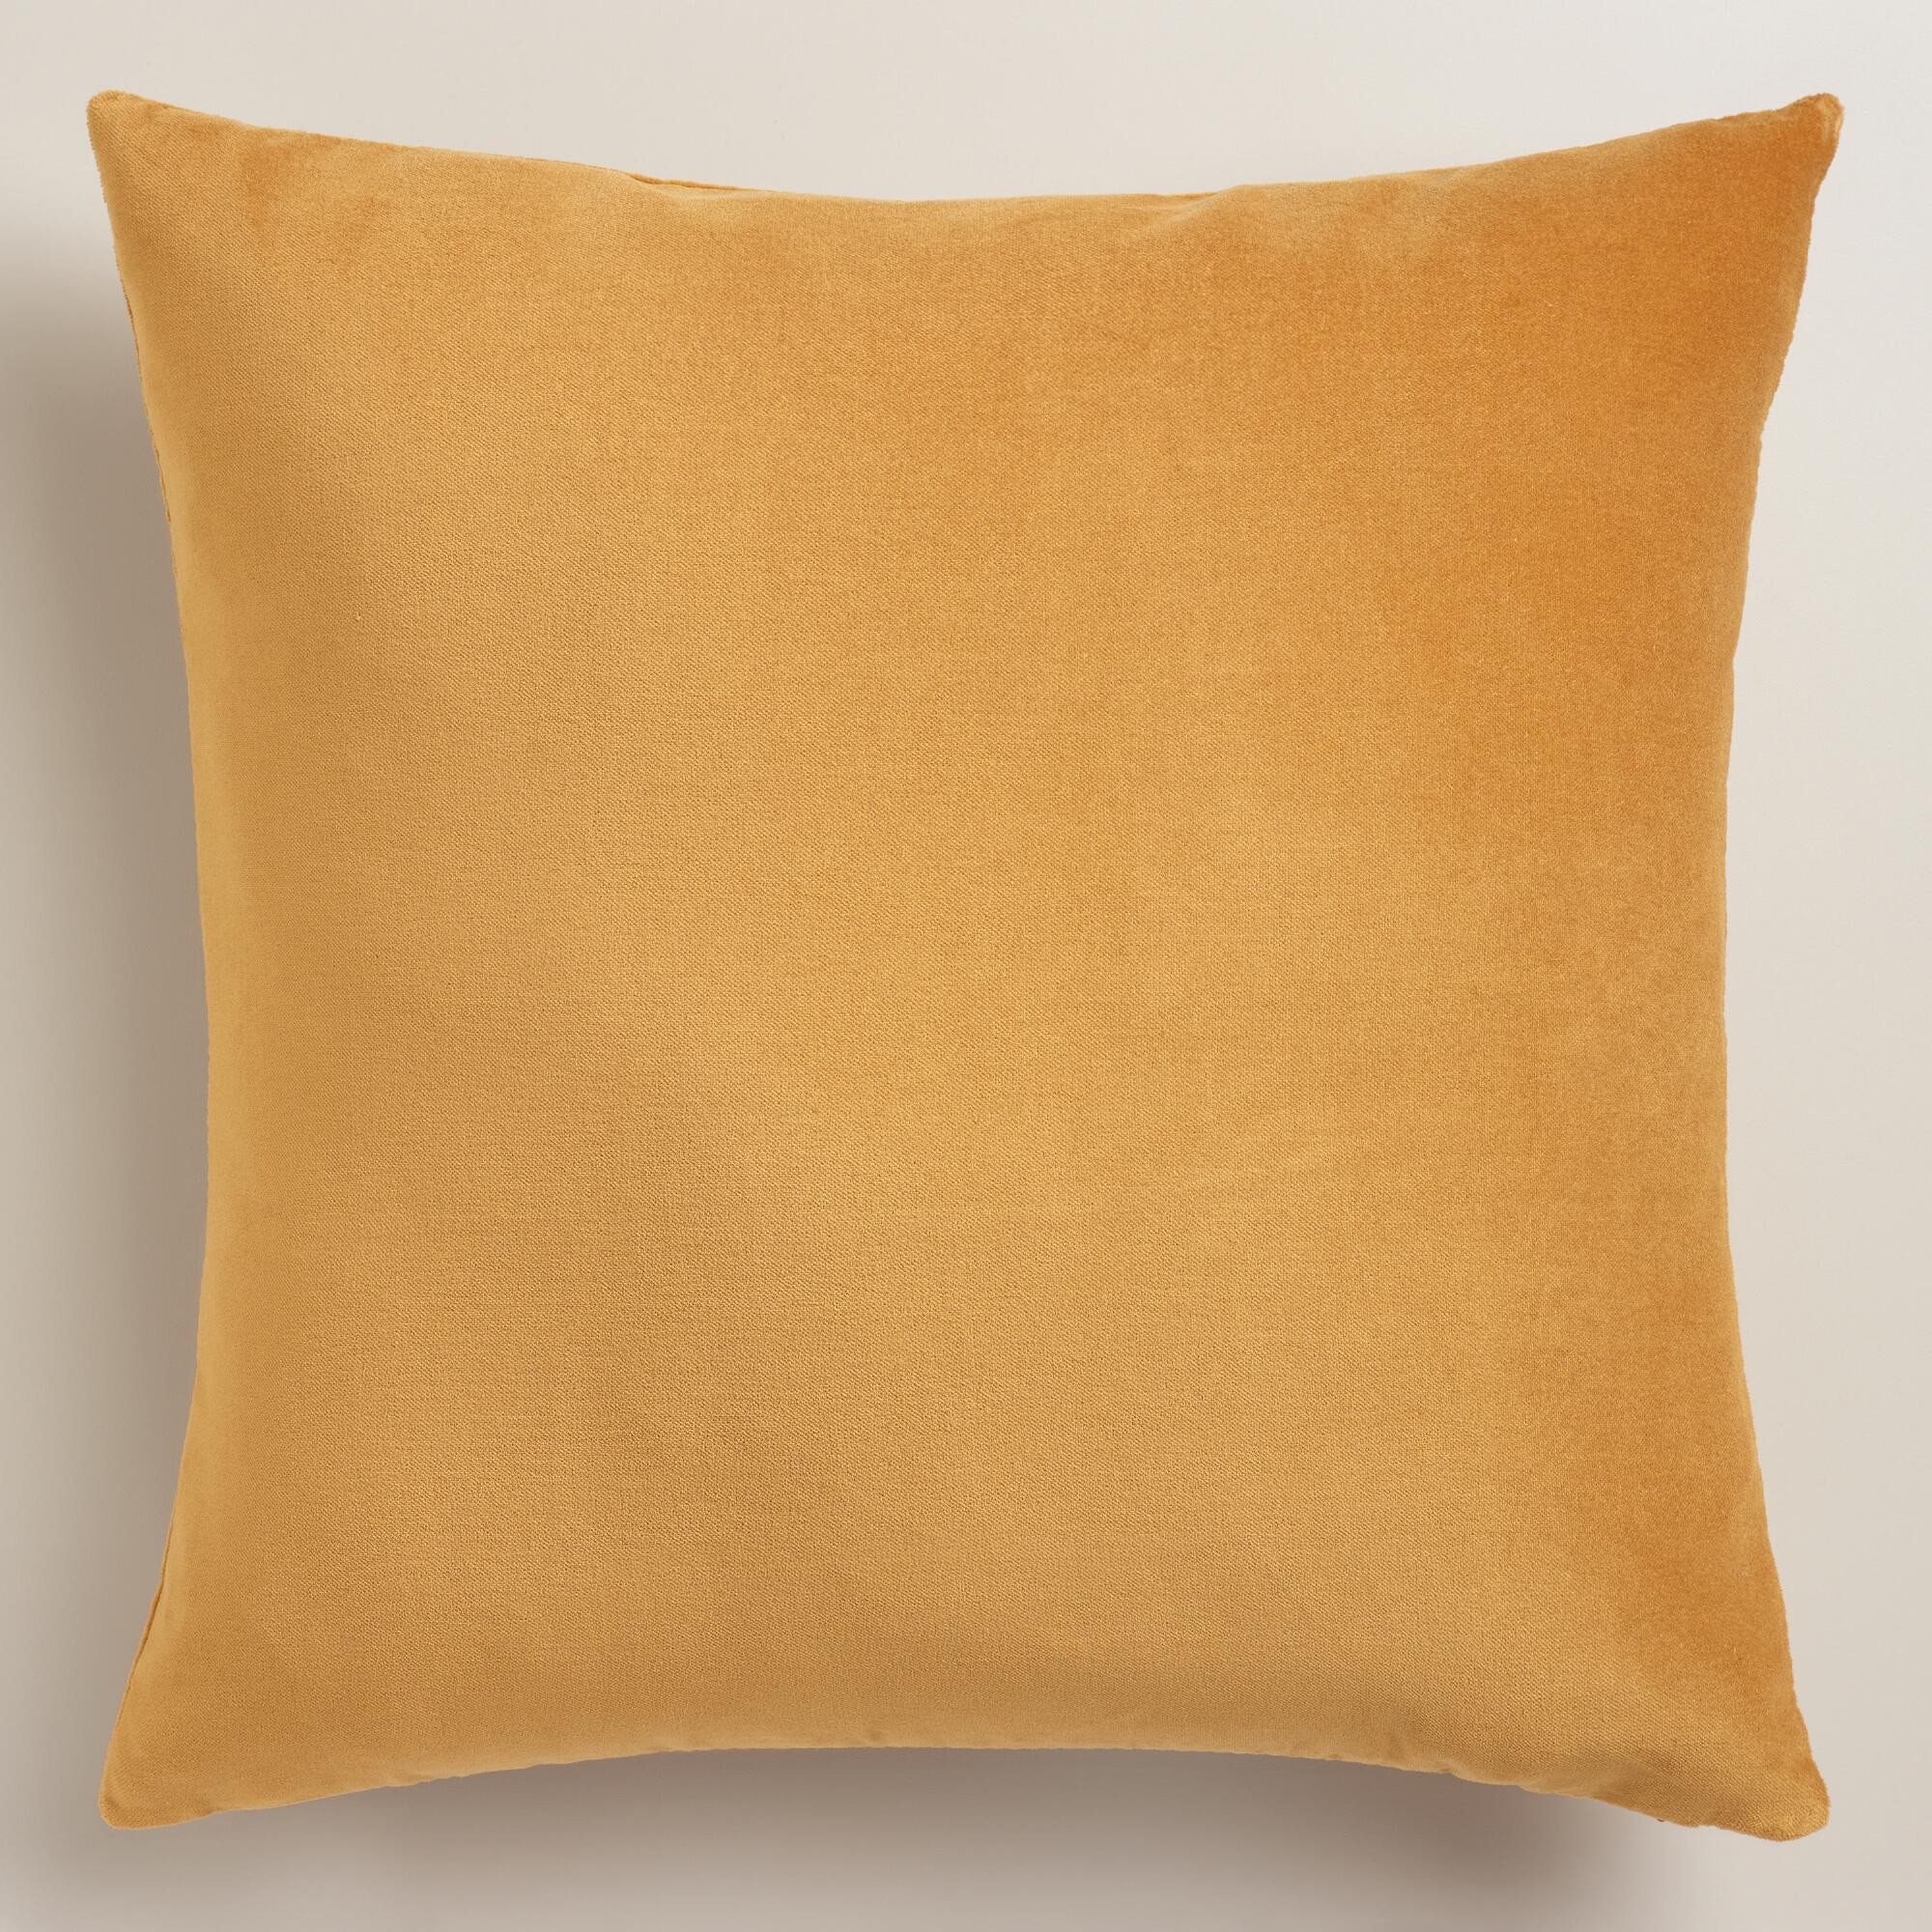 Throw Pillows Gif : Amber Gold Velvet Throw Pillow World Market